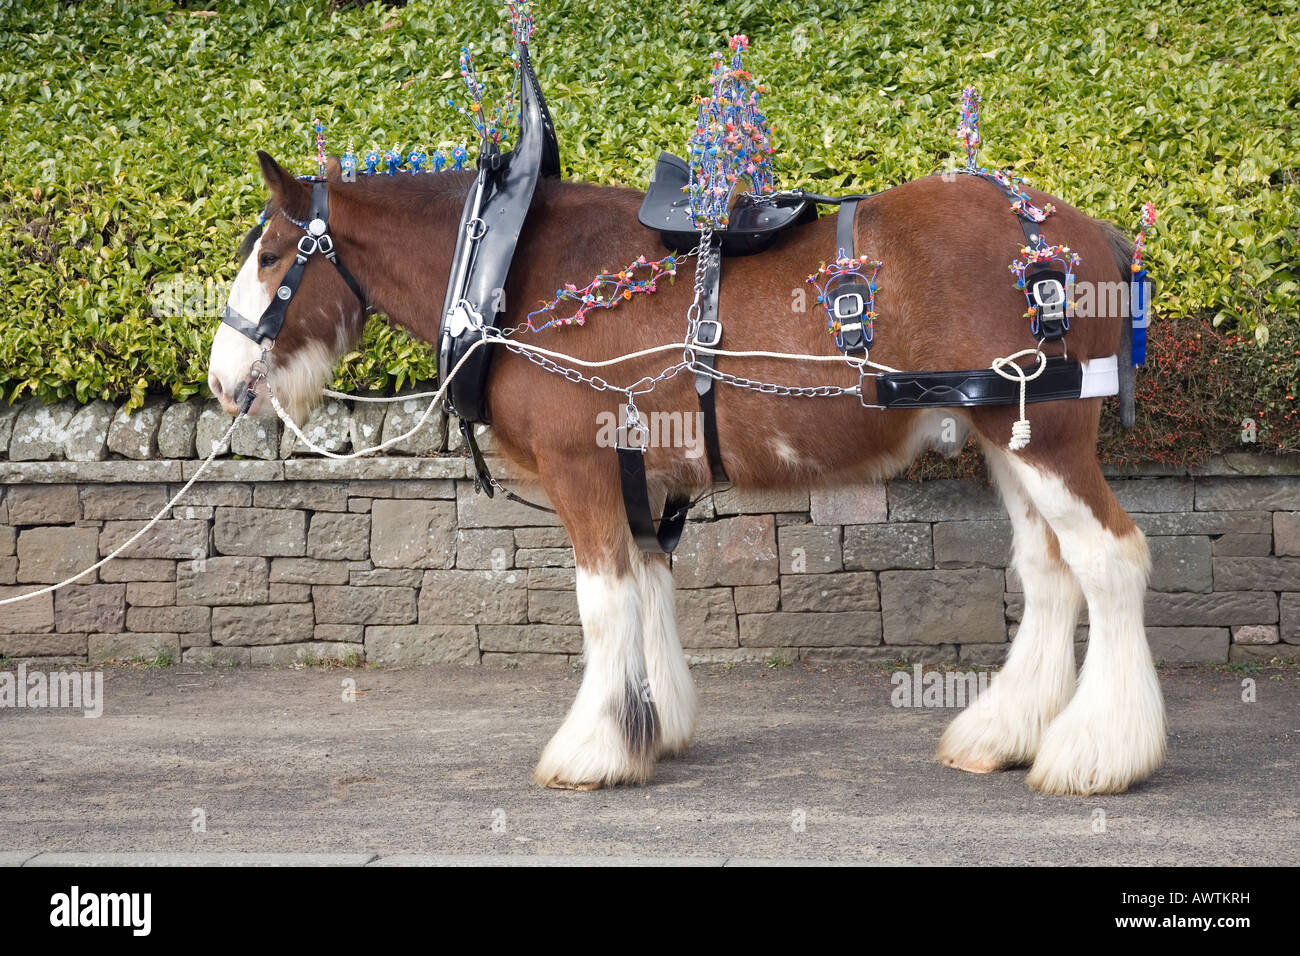 Clydesdale horse Lanarkshire, Scotland. A horse harness or tack  allows a horse to be driven or pull various horse - Stock Image